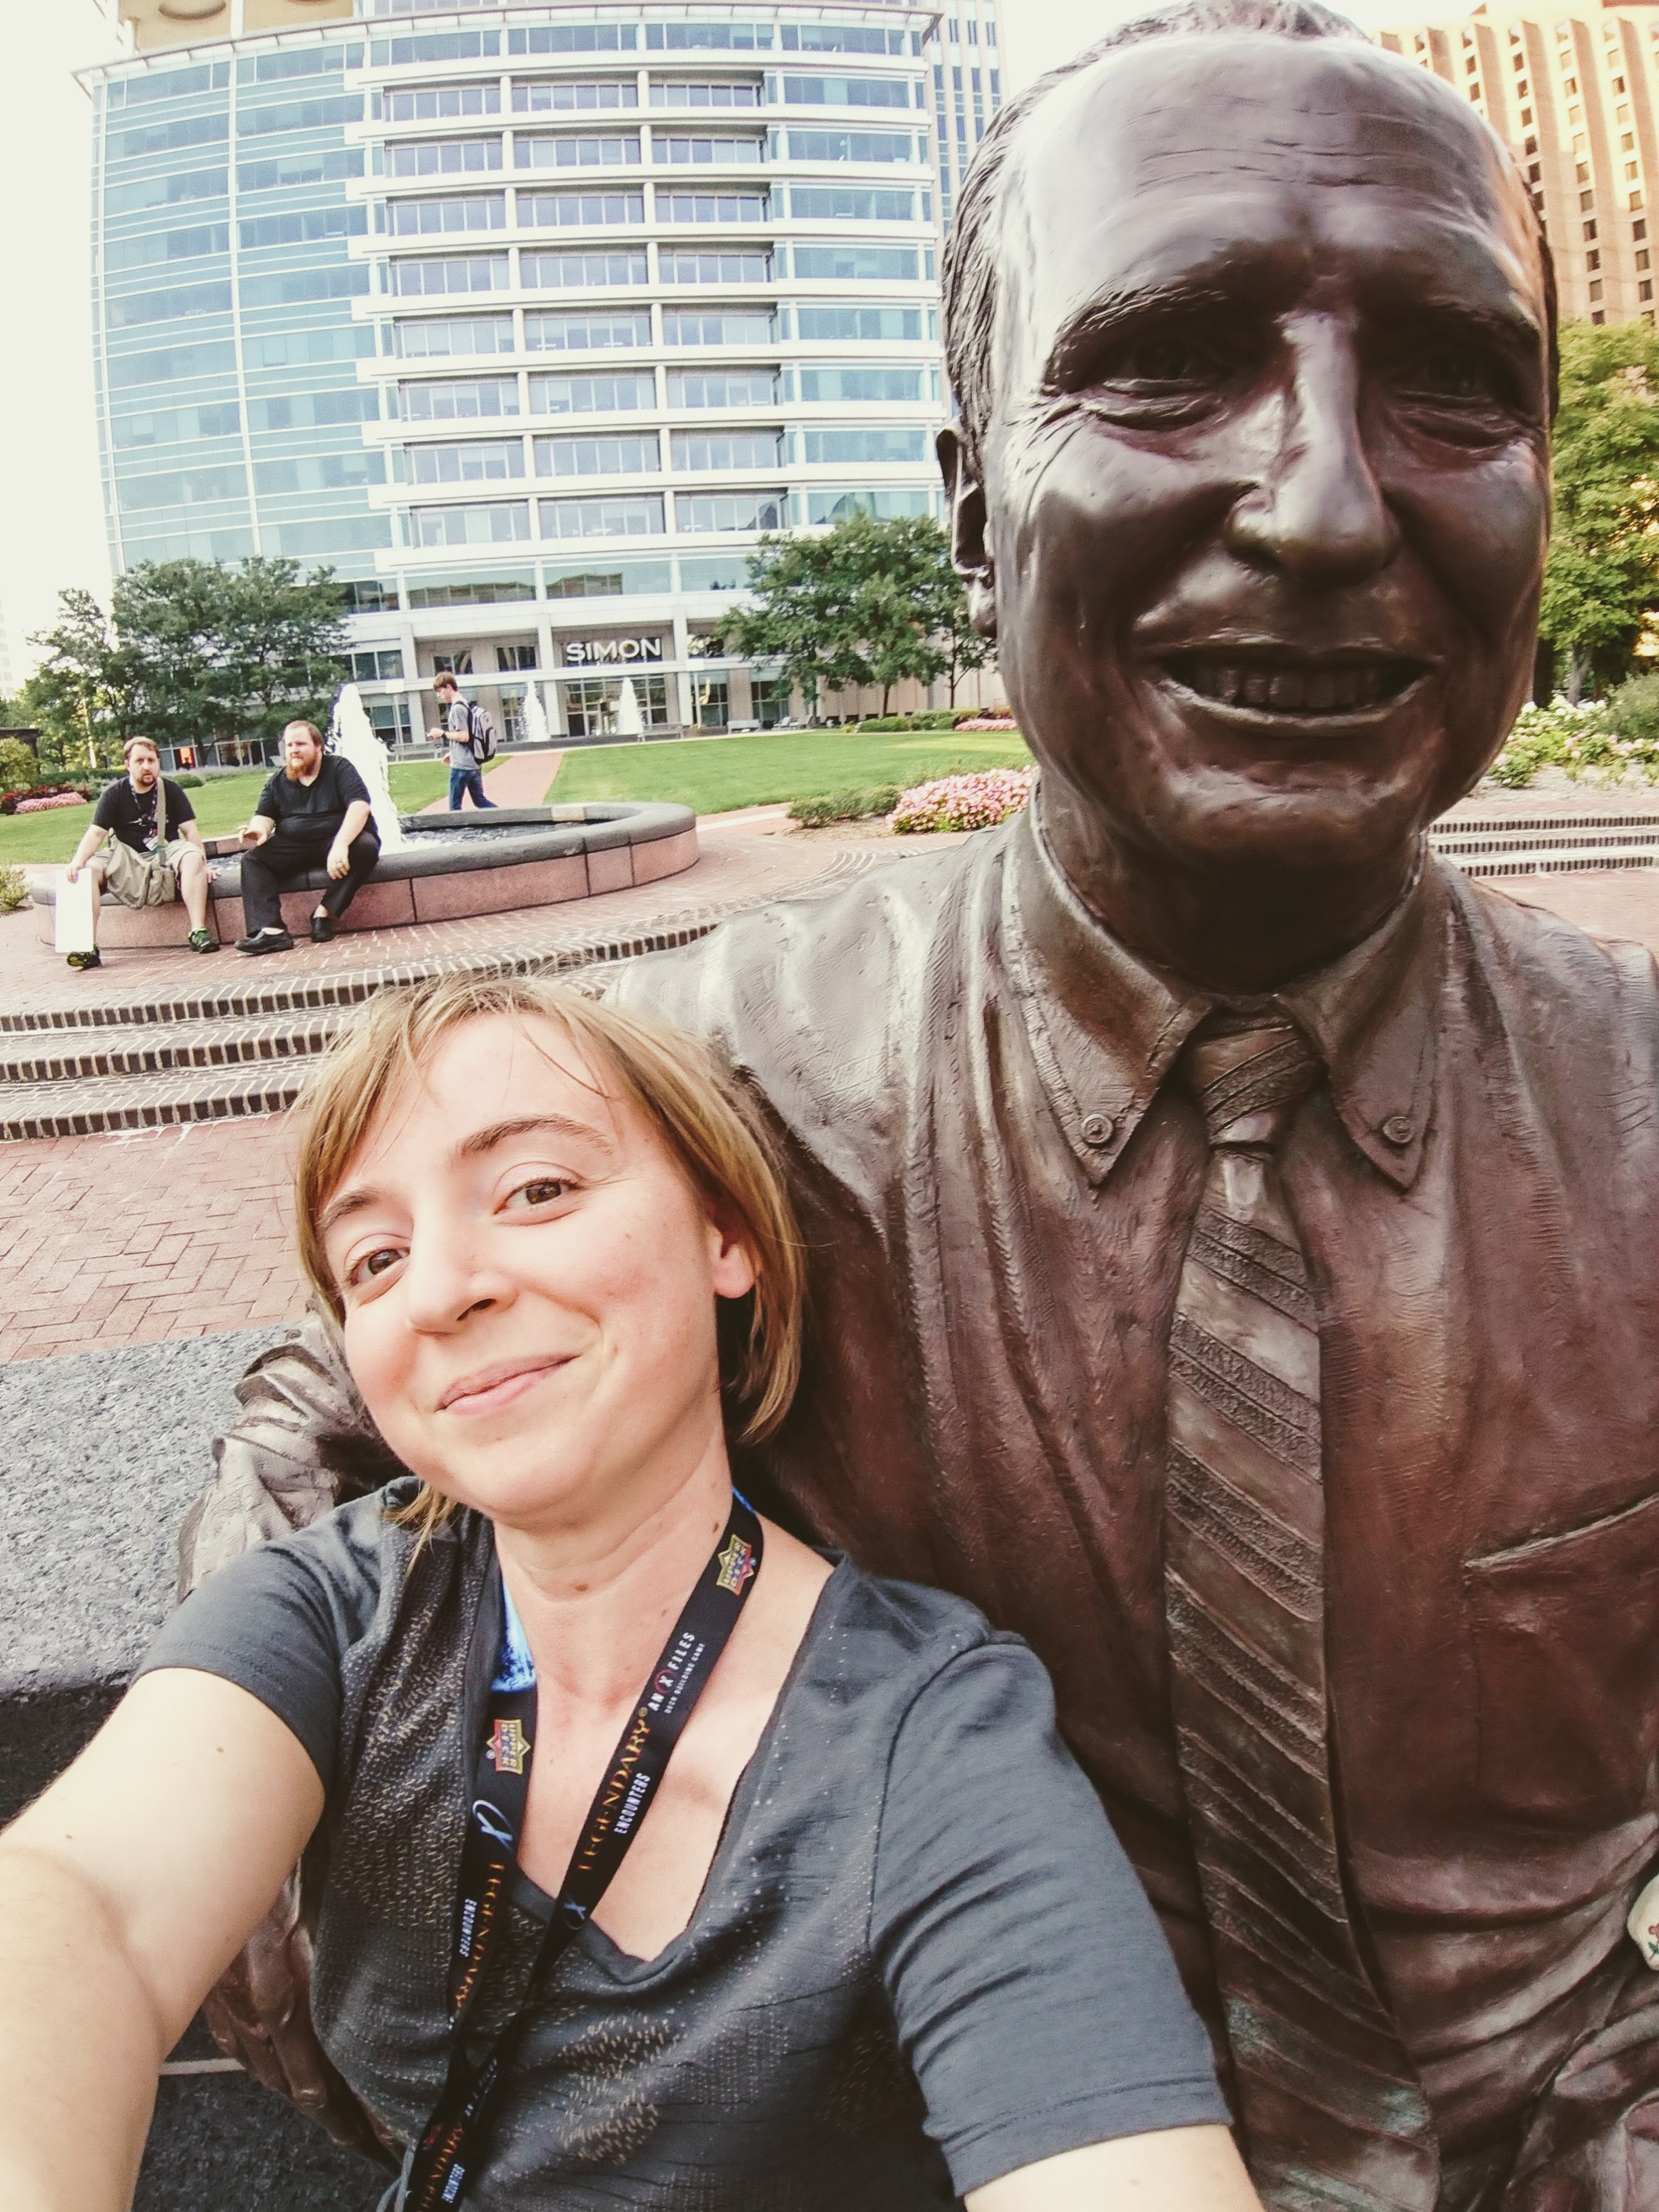 Aug 4 - Digital  Statue selfie